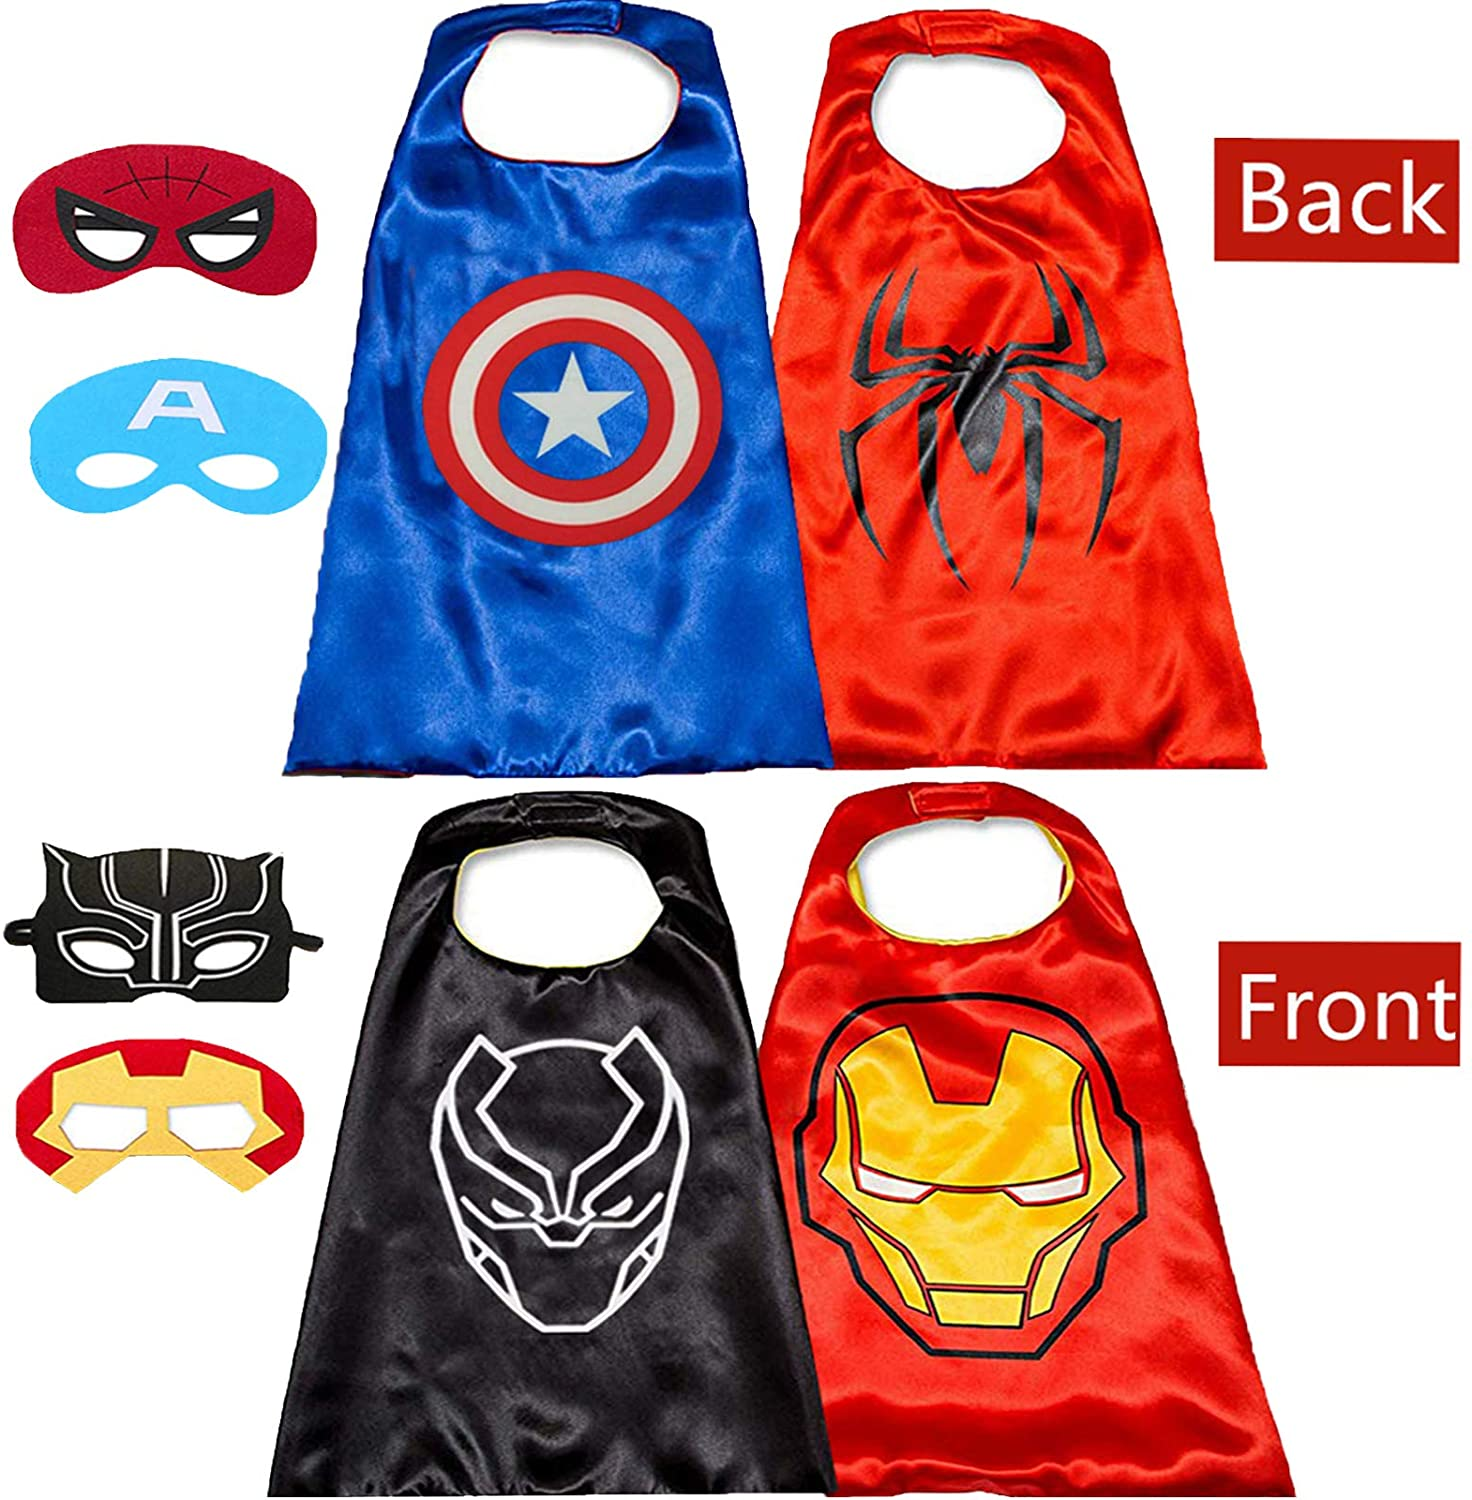 NuGeriAZ Superhero Capes for Kids-Superhero Costumes for Boys Avengers Capes for Kids Dress up 4-10 Year Old Boy Gifts